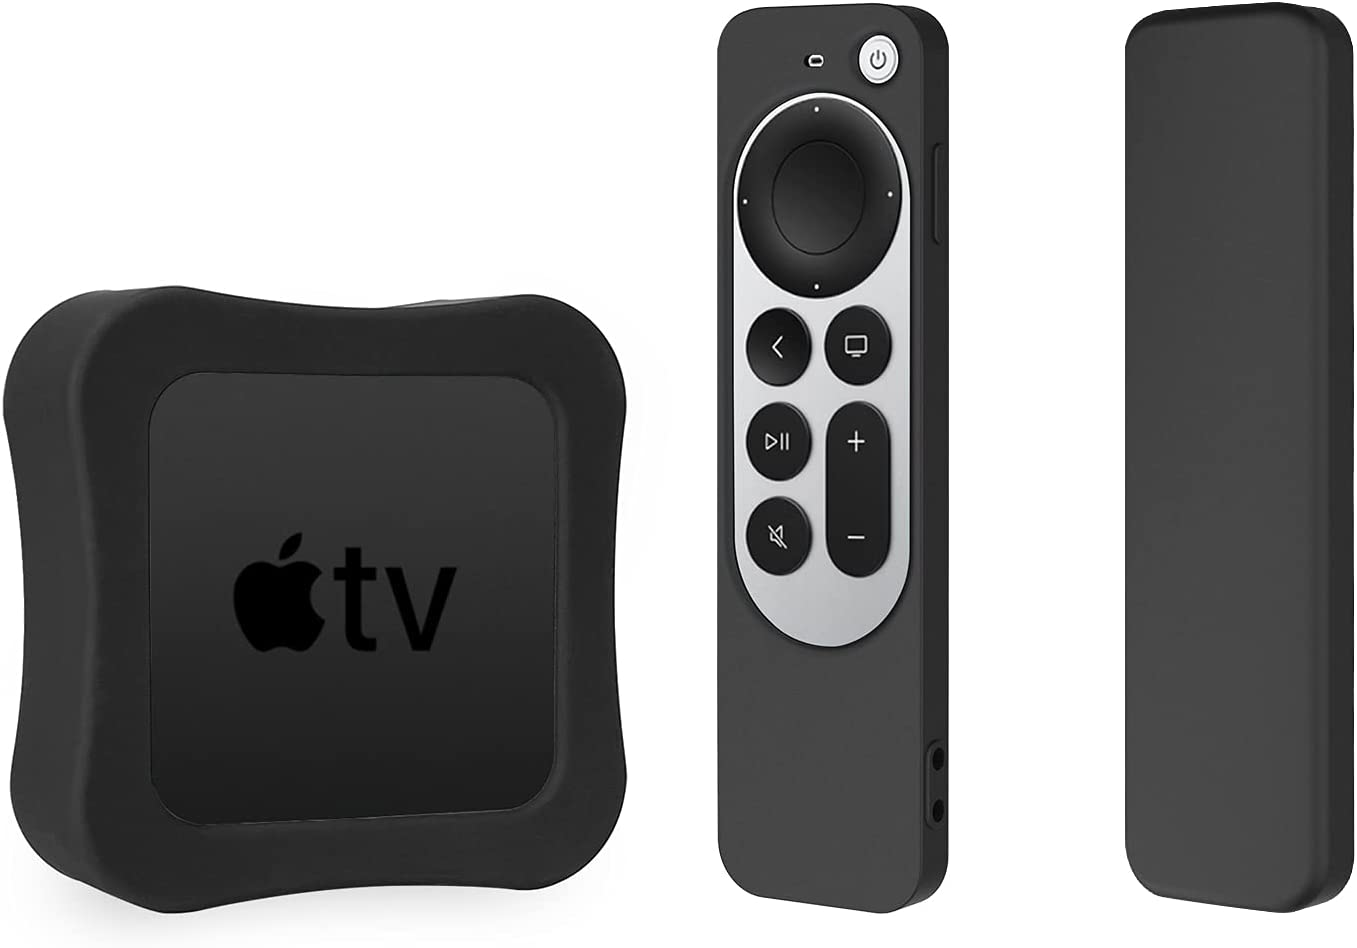 Silicone Case for 2021 Apple TV 4K & Silicone Case for Siri Remote 2 Pack Protective Cover (Black)